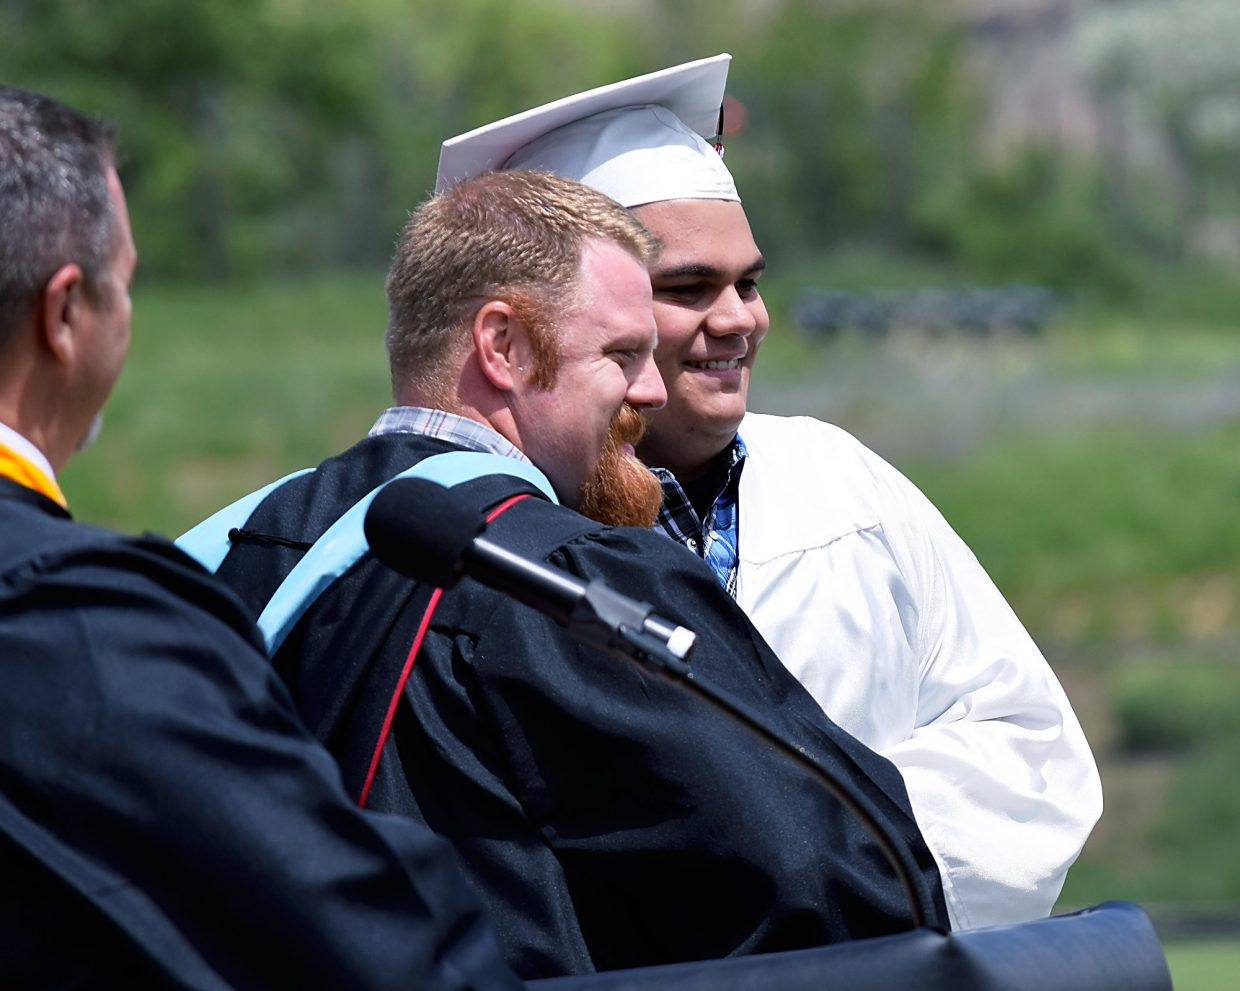 Grand Valley High Principal Ryan Frink, left, congratulates Layn Ryden after Ryden received his high school diploma during the school's graduation ceremony in Parachute on Saturday morning.